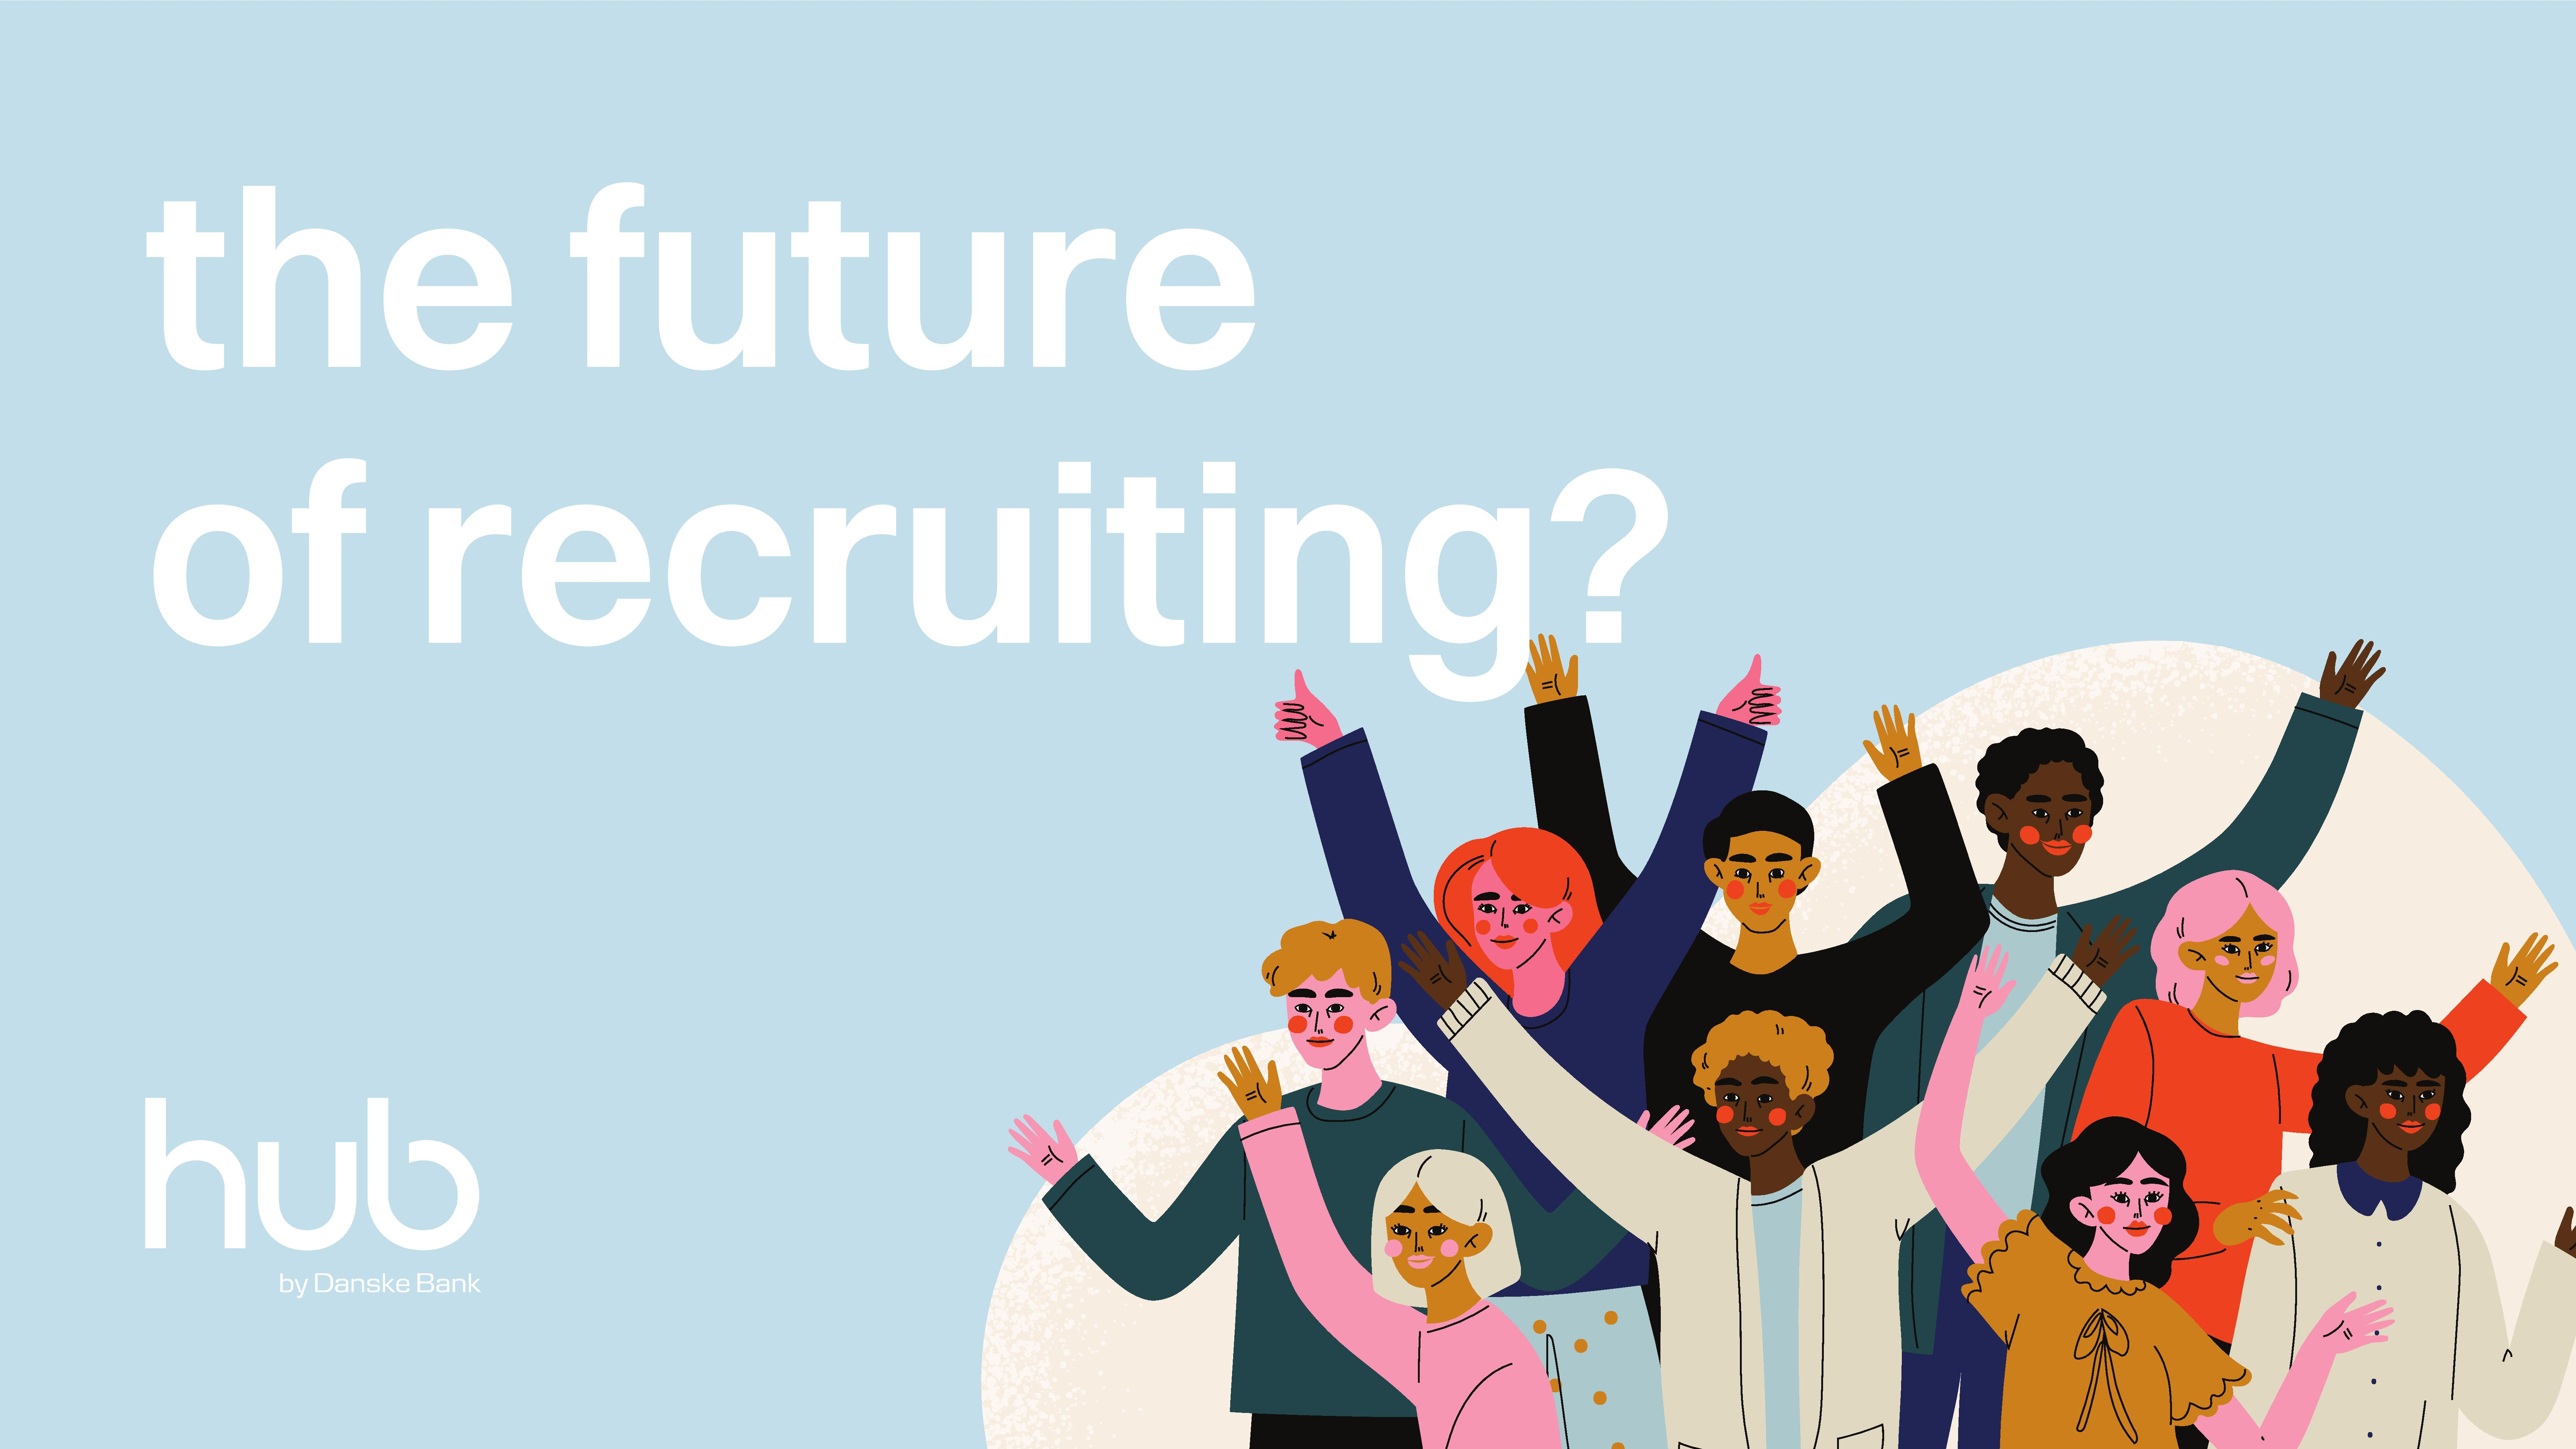 the future of recruiting